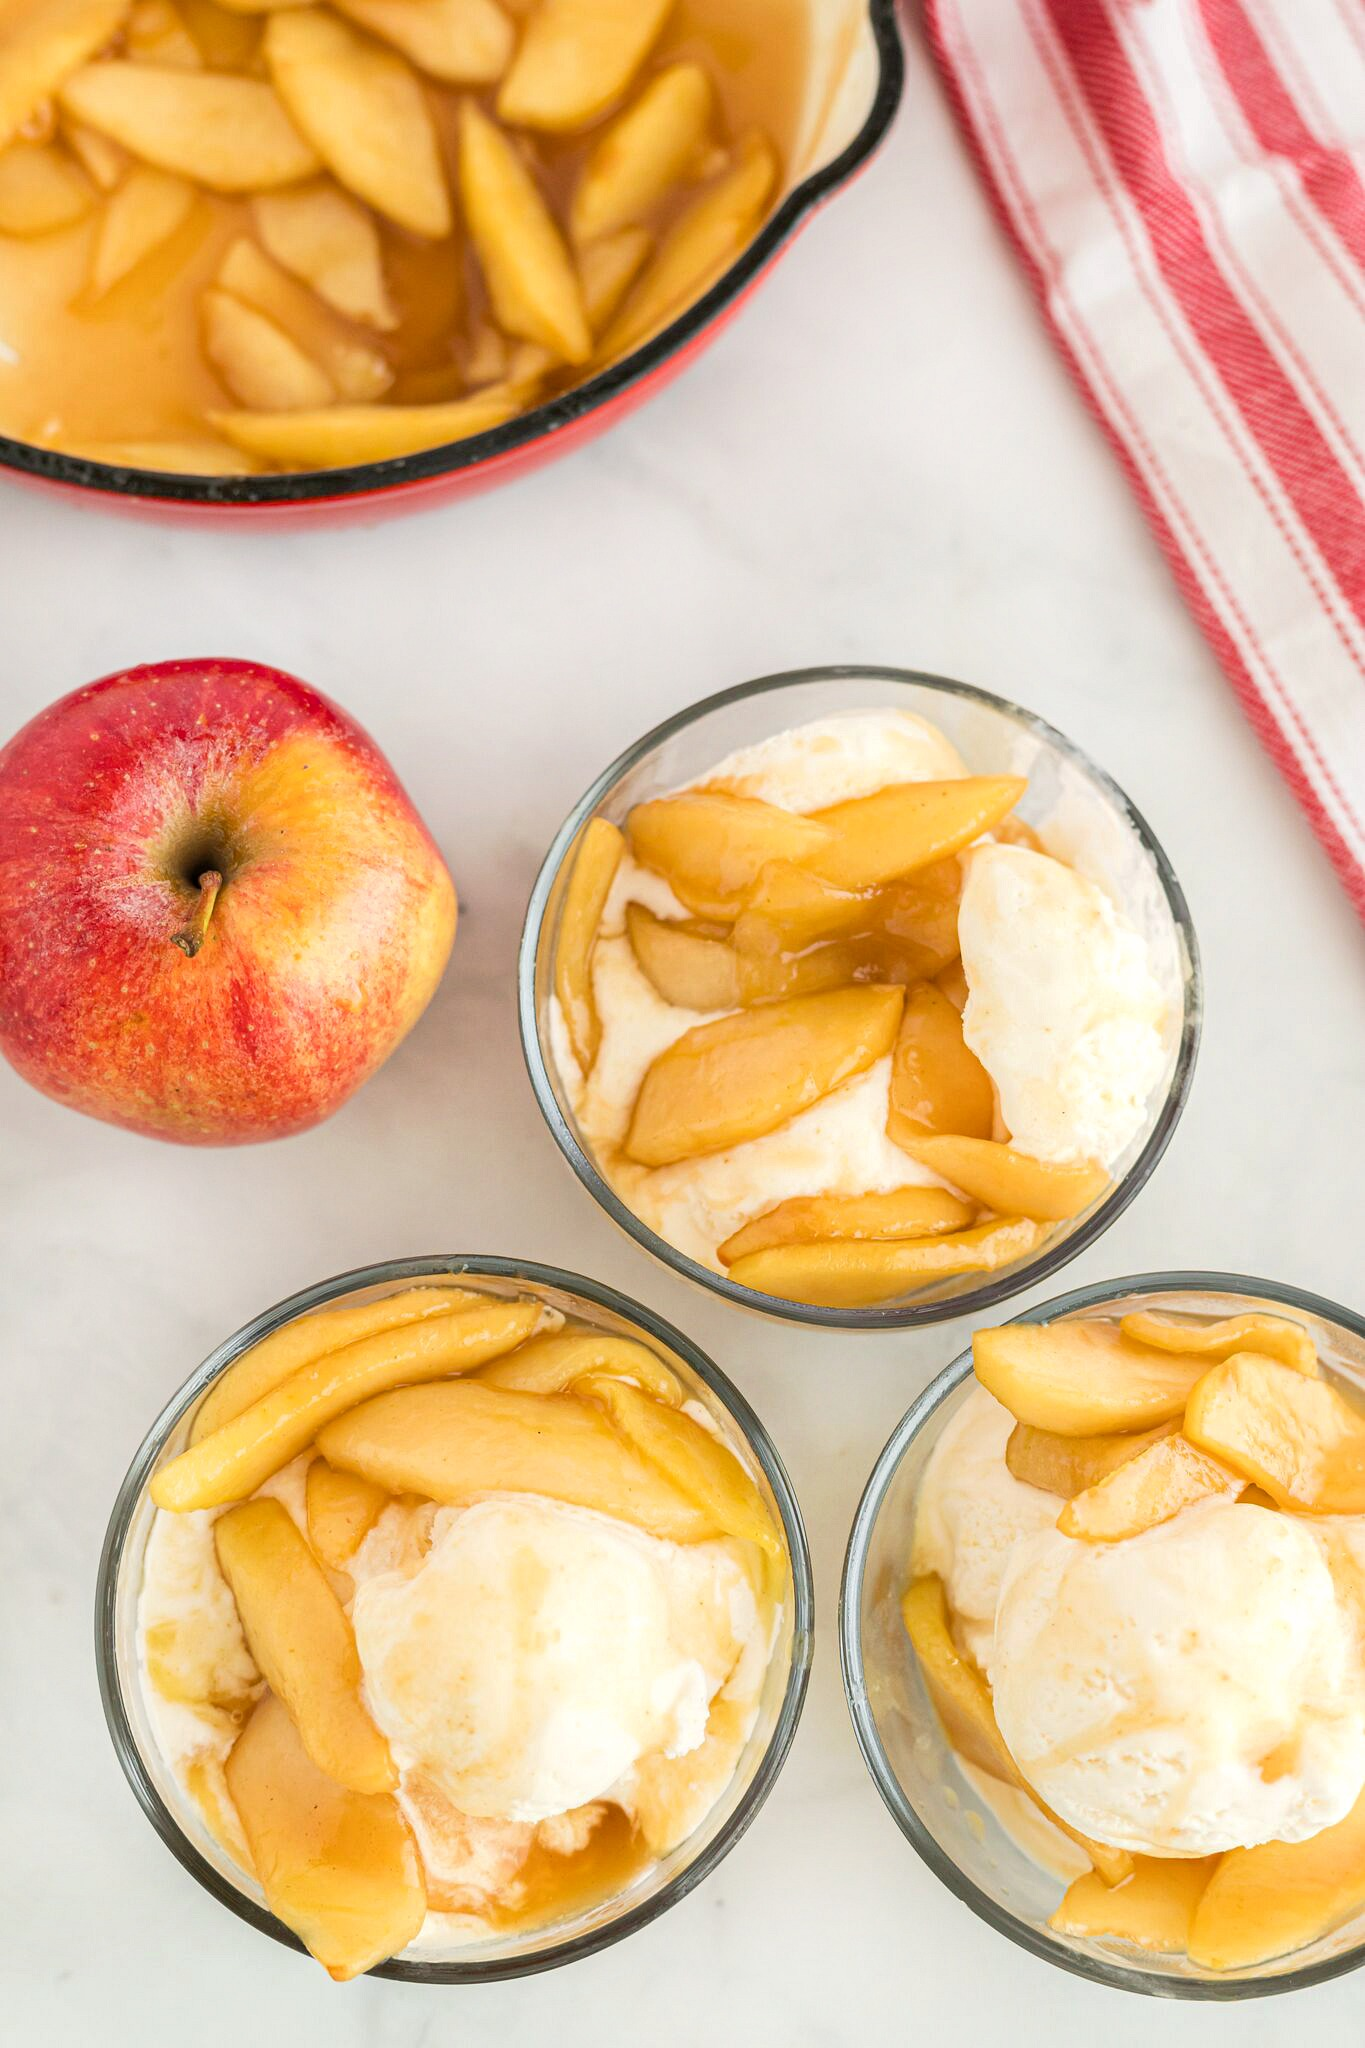 Apple Sundae dessert